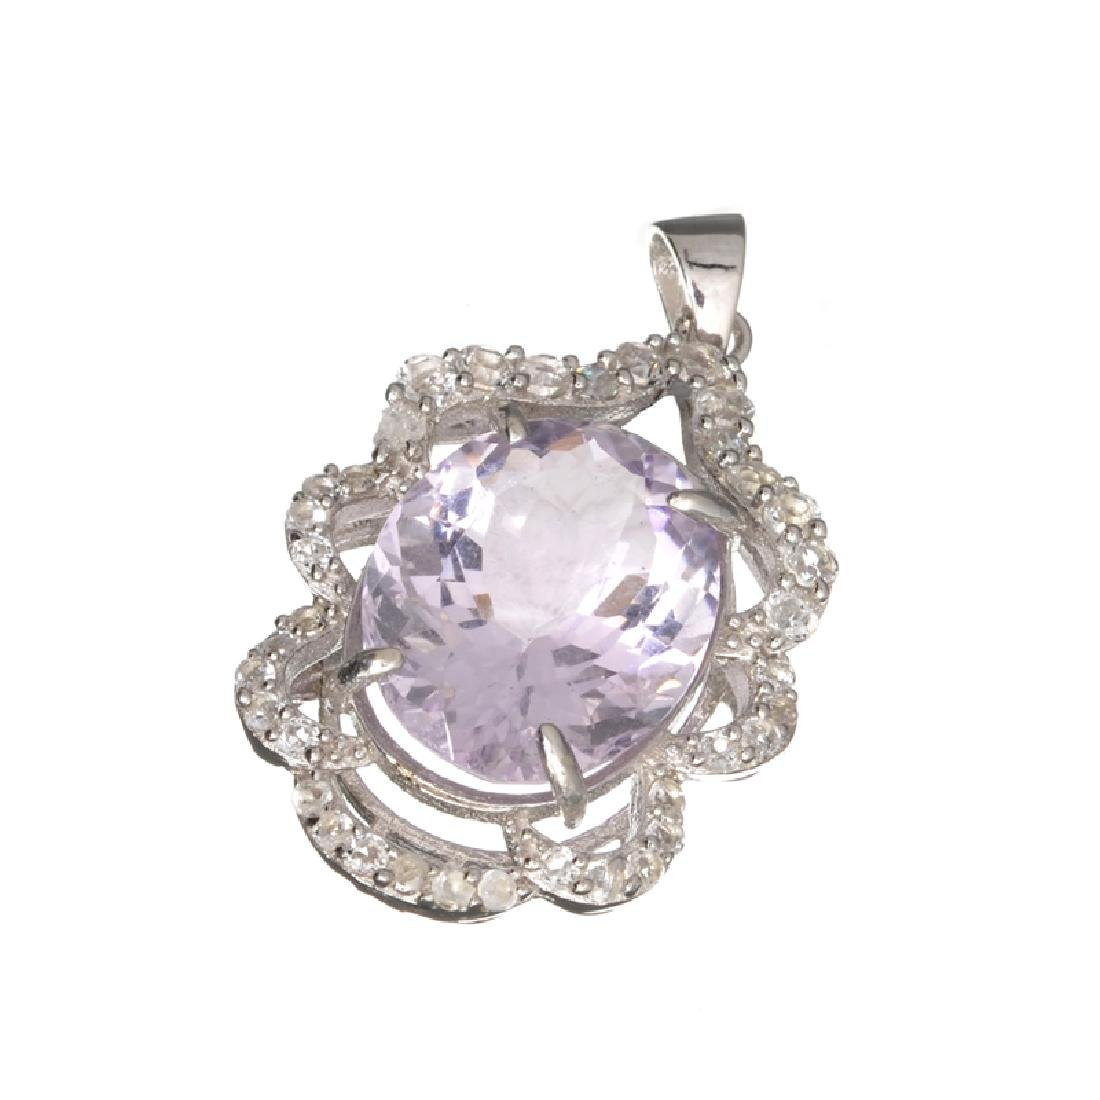 Fine Jewelry 9.16CT Amethyst Quartz And Colorless Topaz